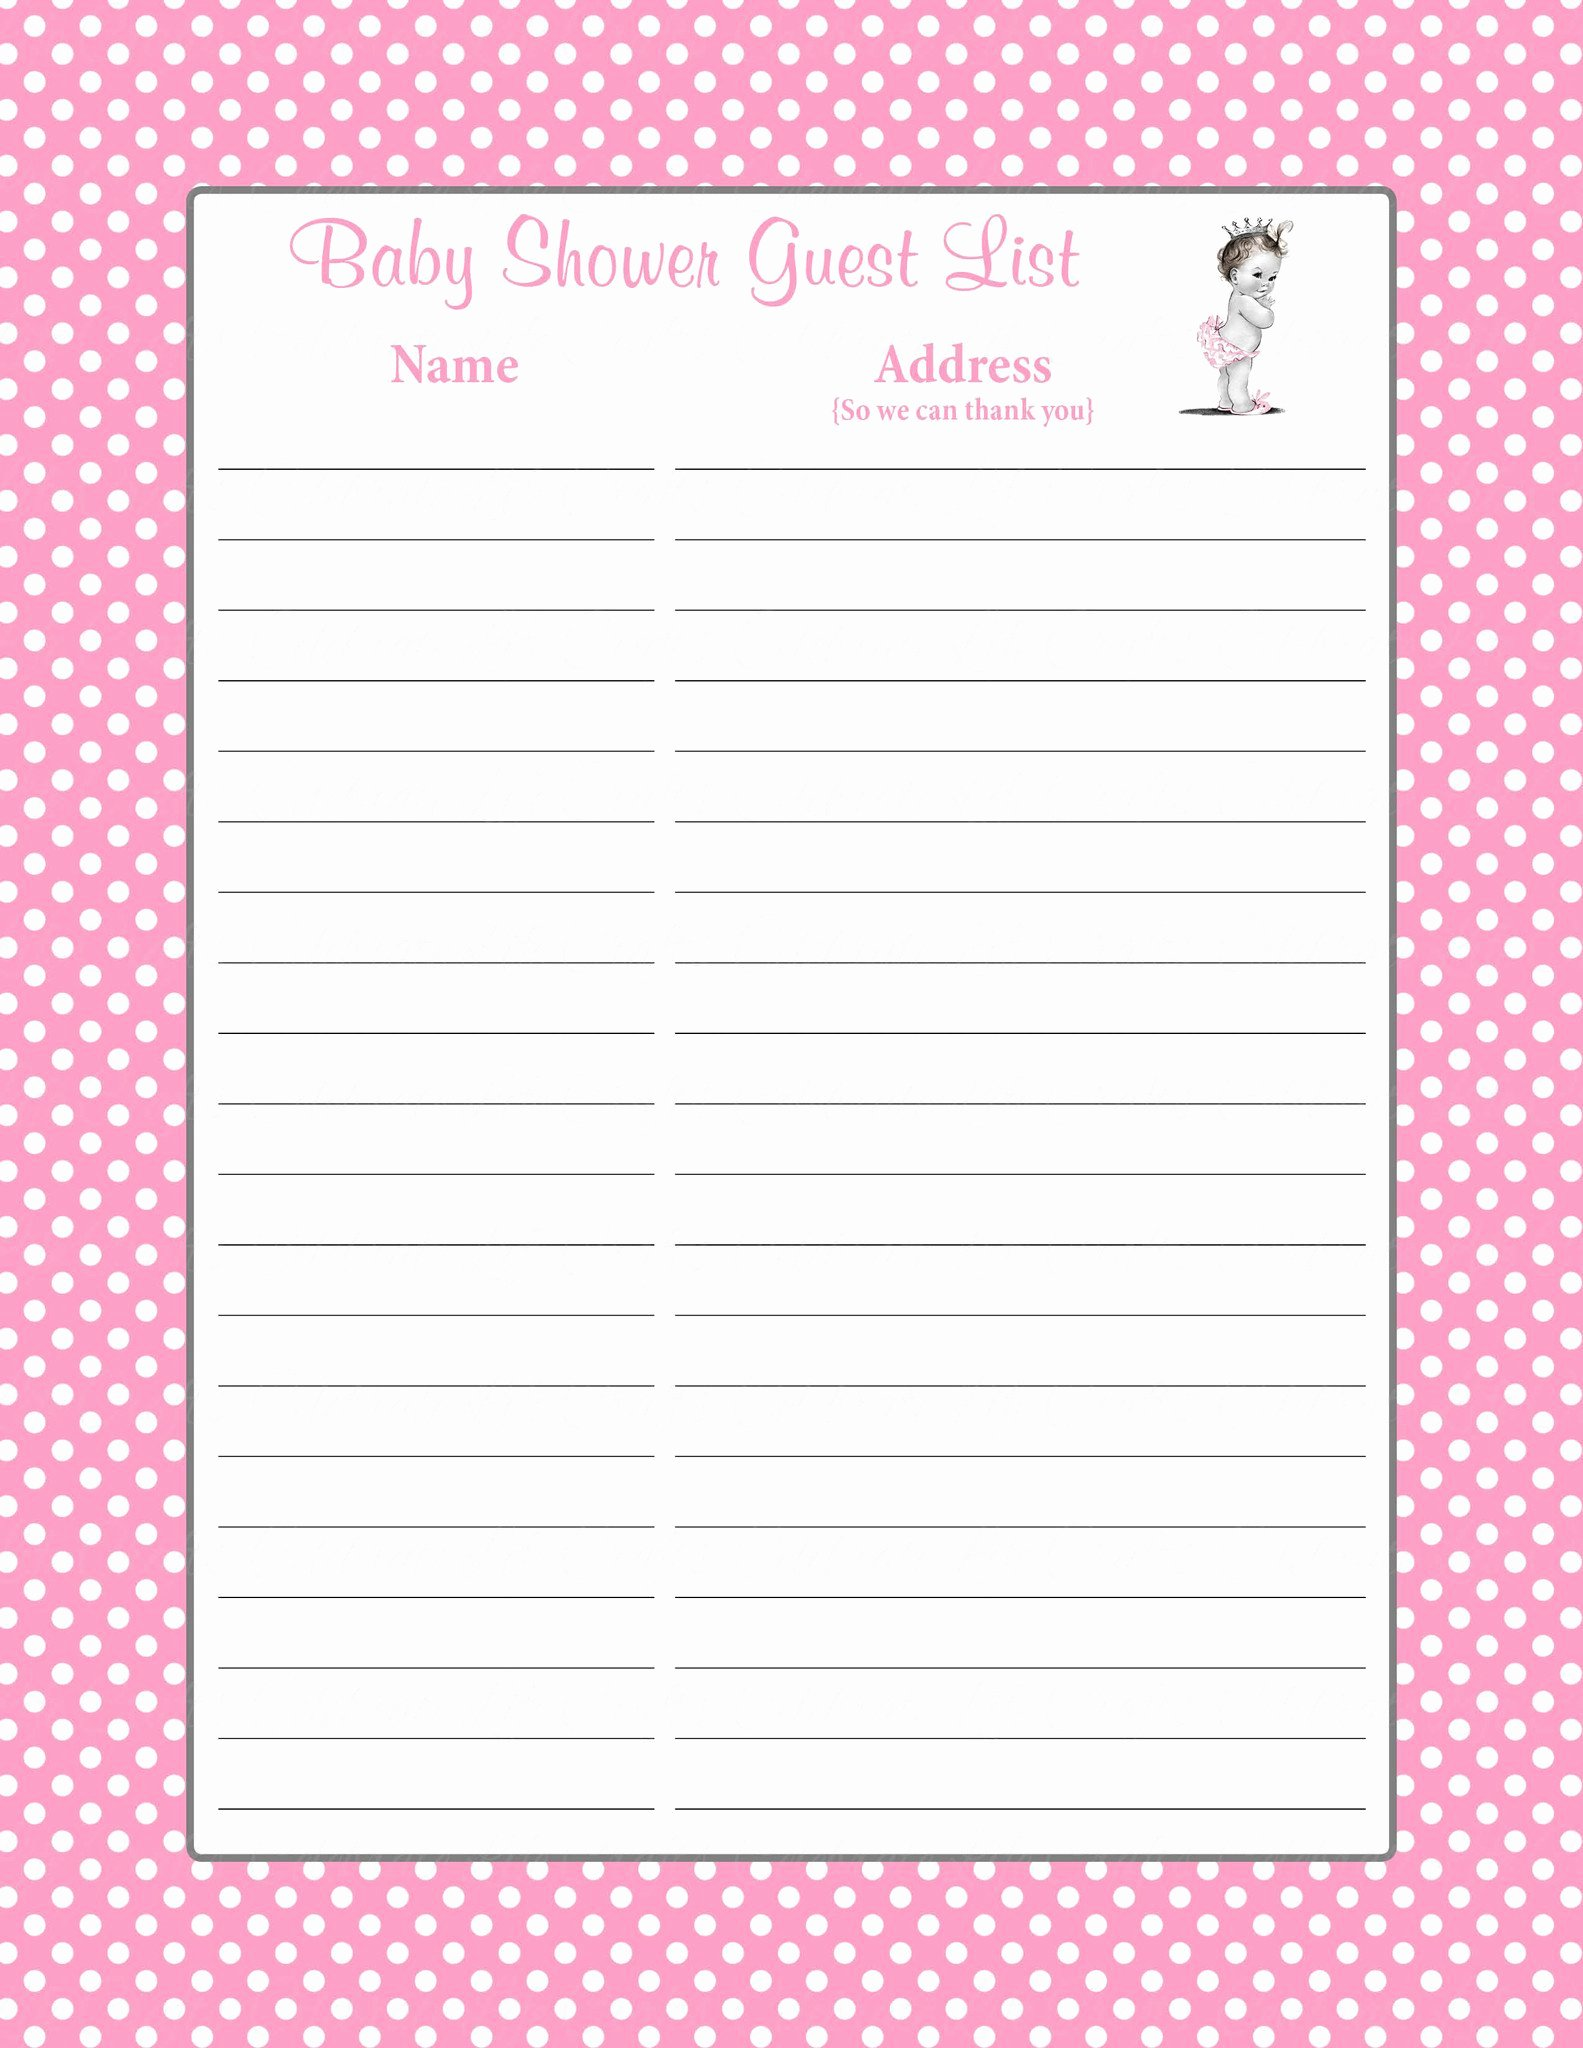 Baby Shower Gift Lists Inspirational Baby Shower Guest List Set Princess Baby Shower theme